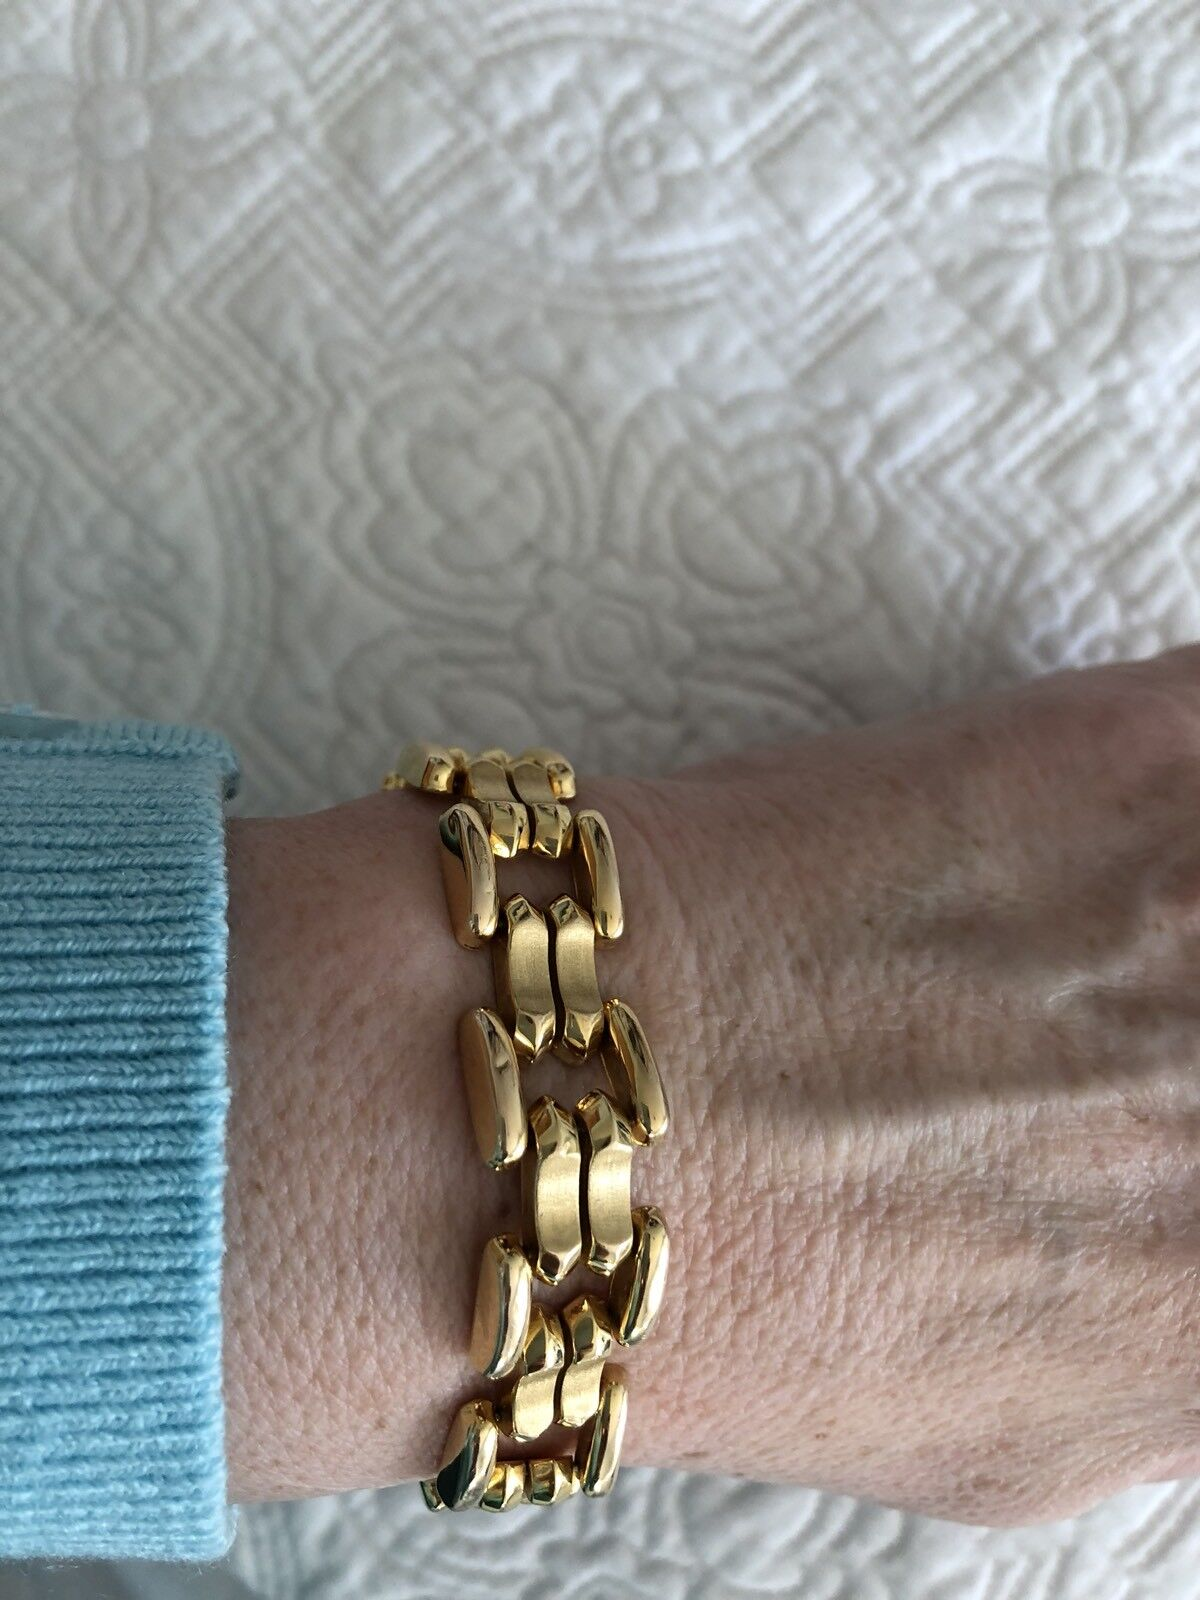 14 KT YELLOW gold BRACELET 21 GRAMS 7.25 Inch ️